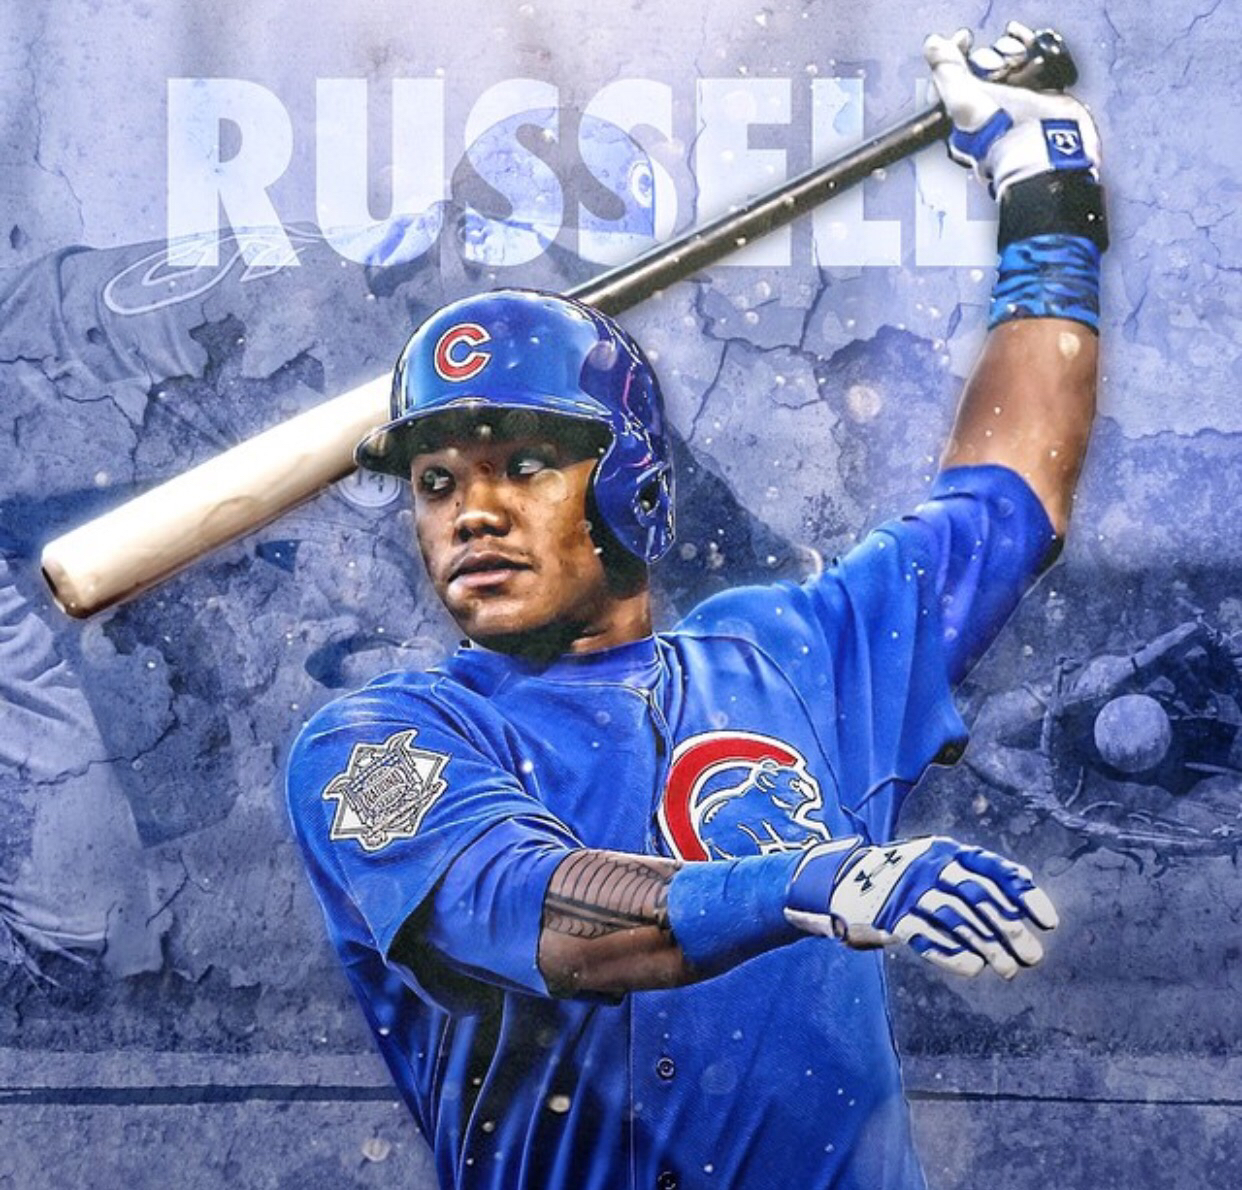 1242x1190 - Addison Russell Wallpapers 2